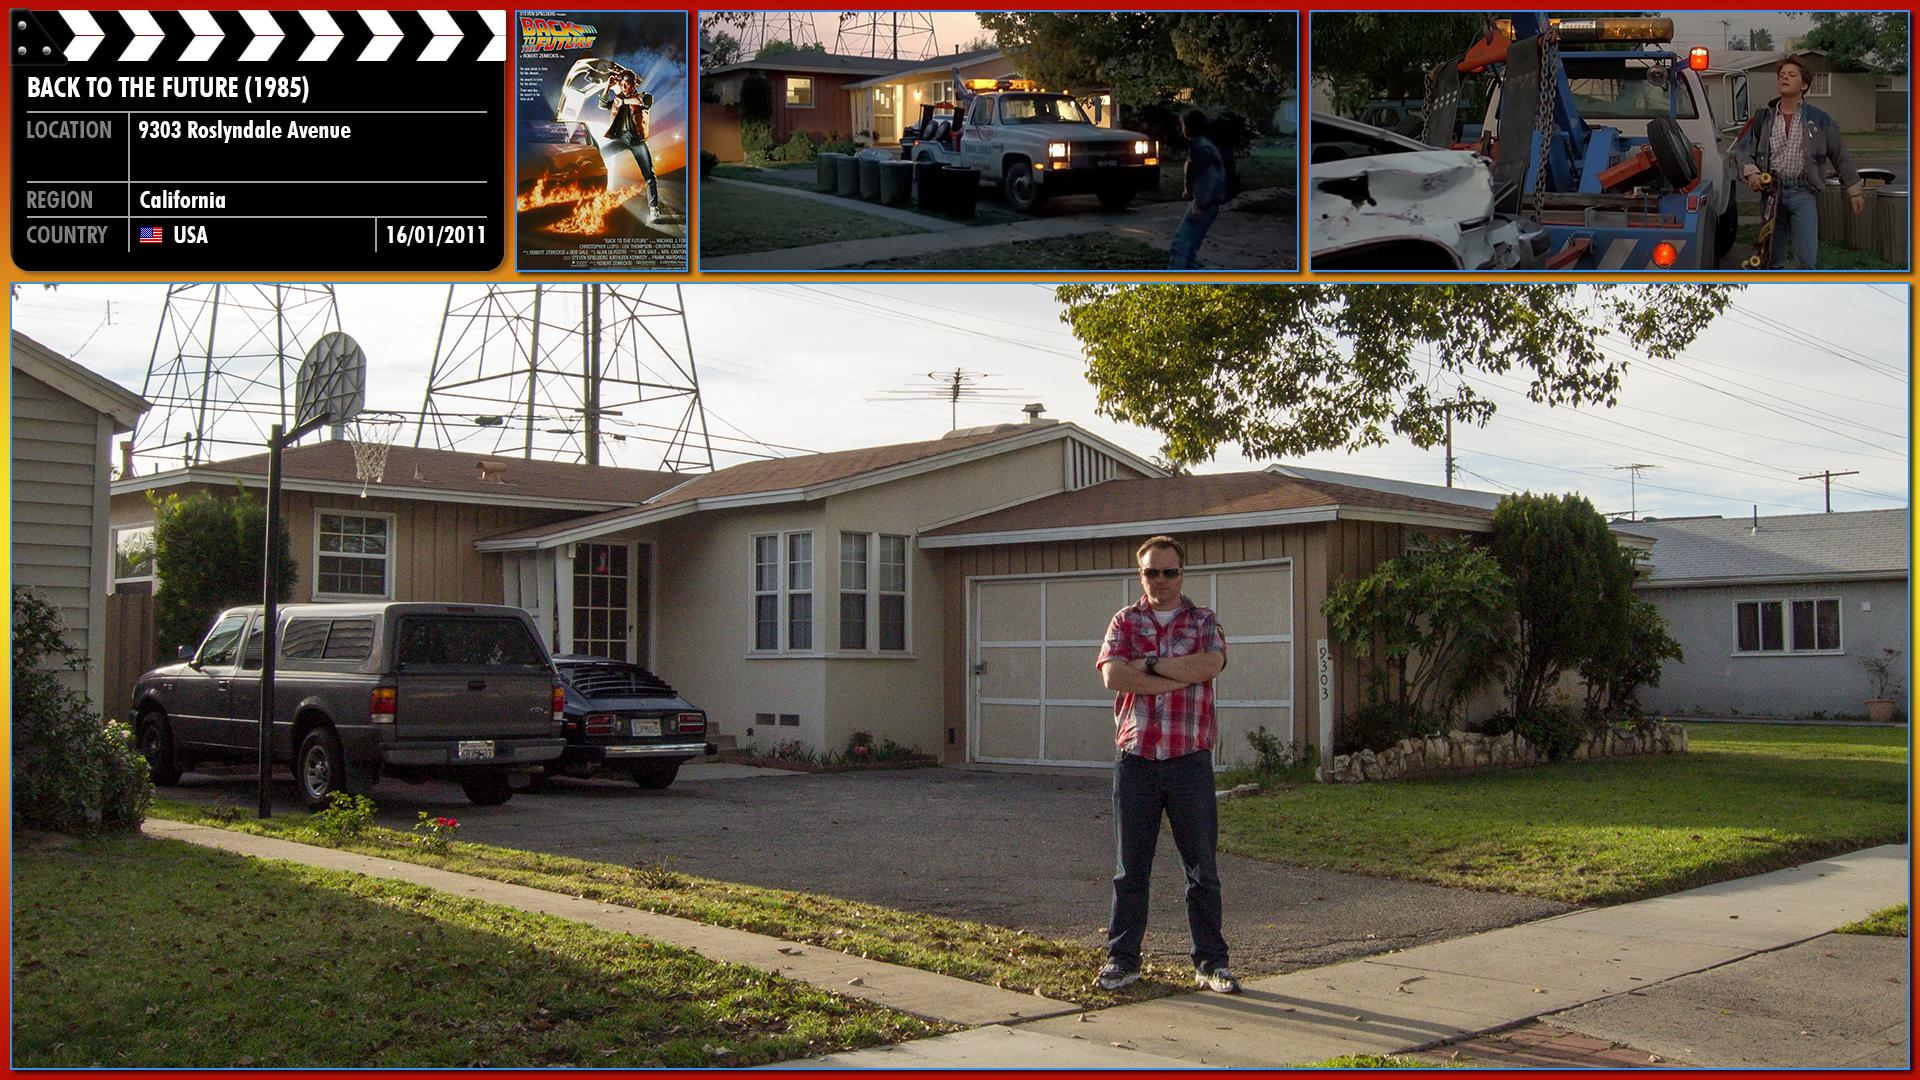 Filming location photo for Back to the Future (1985) 11 of 13